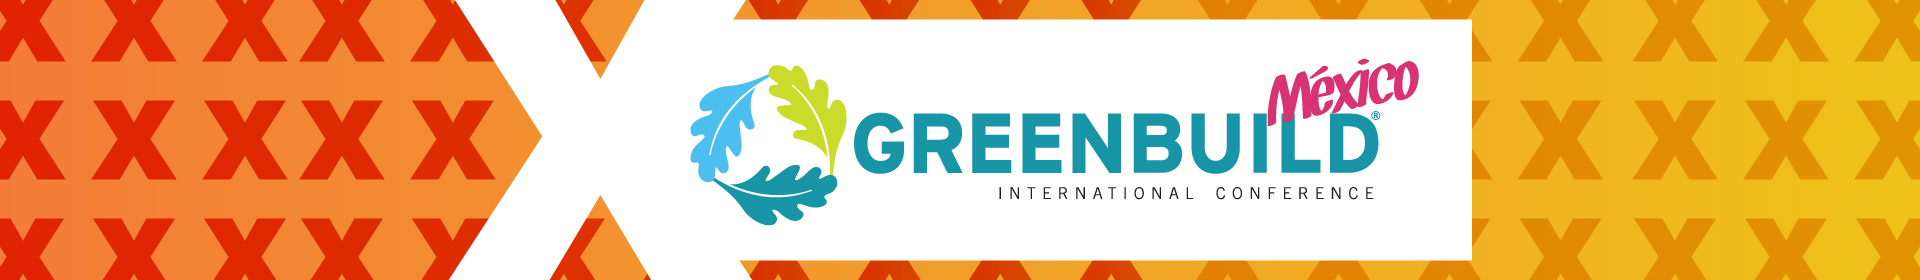 Greenbuild Mexico 2020 Event Banner